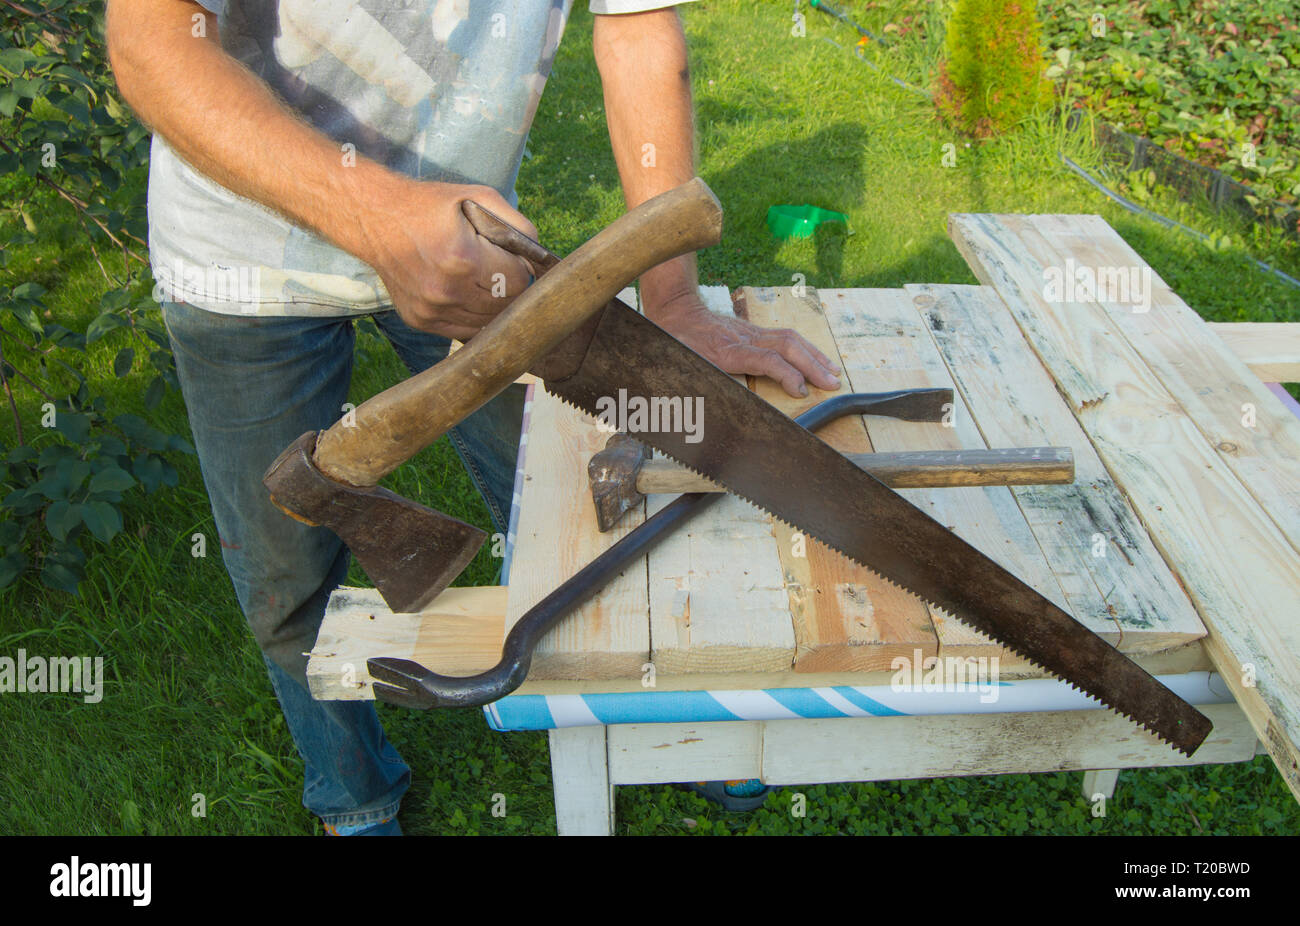 man uses a hacksaw, a hatchet, a claw hammer for construction work in your garden. - Stock Image